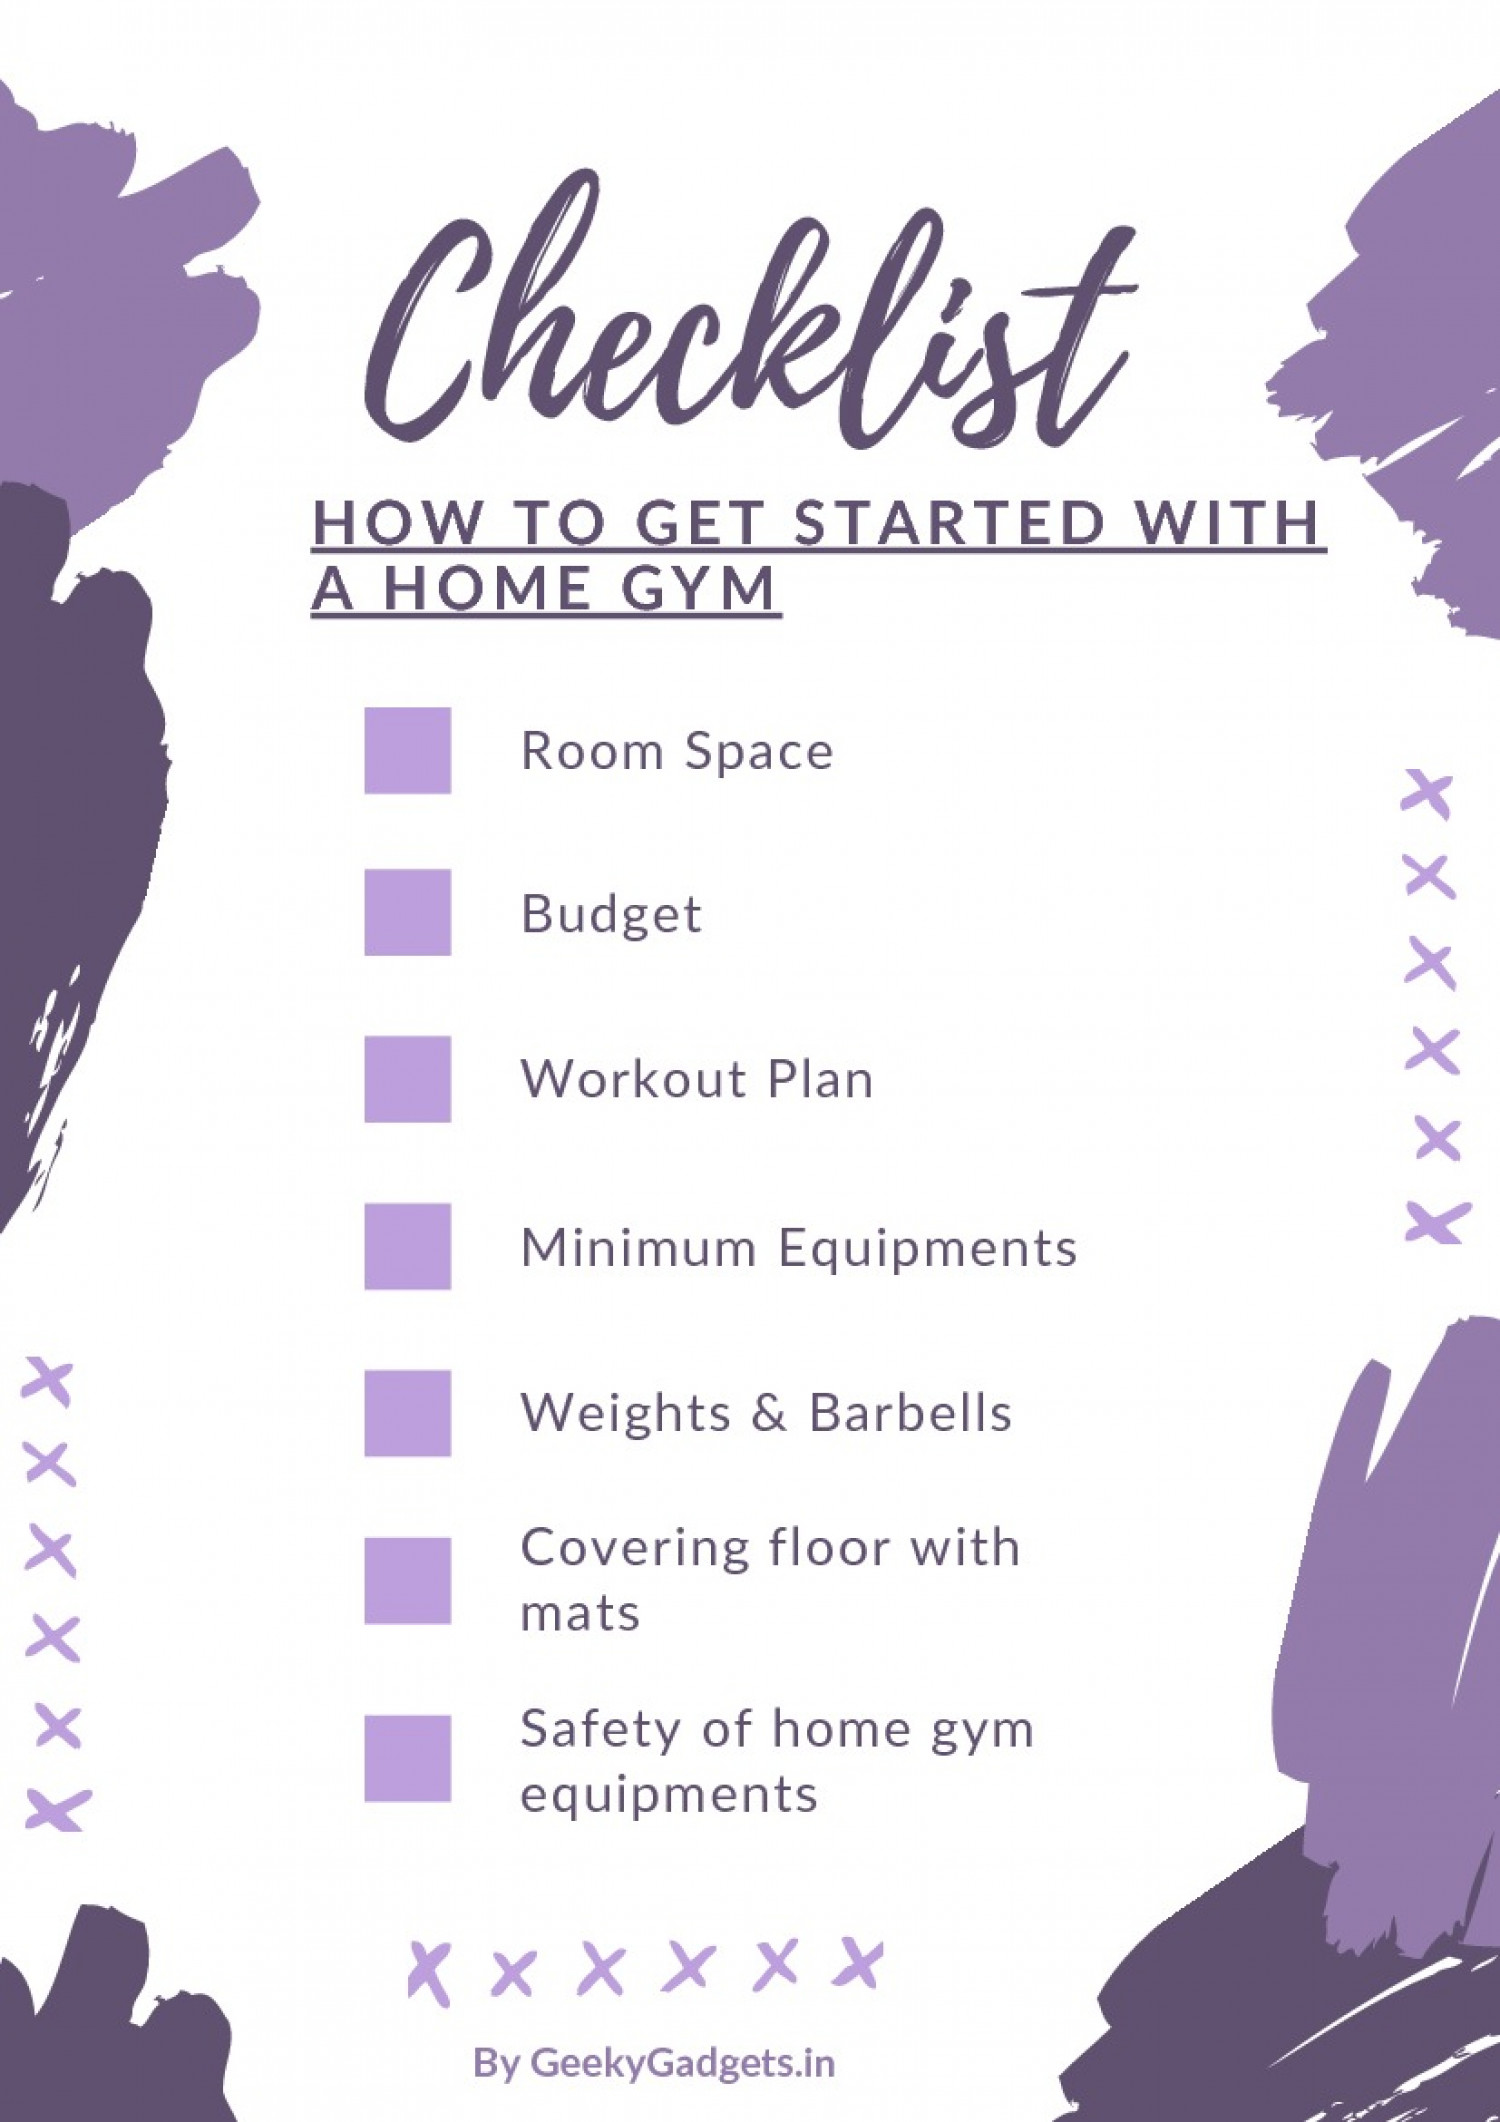 How to Get Started With a Home Gym: Checklist Infographic